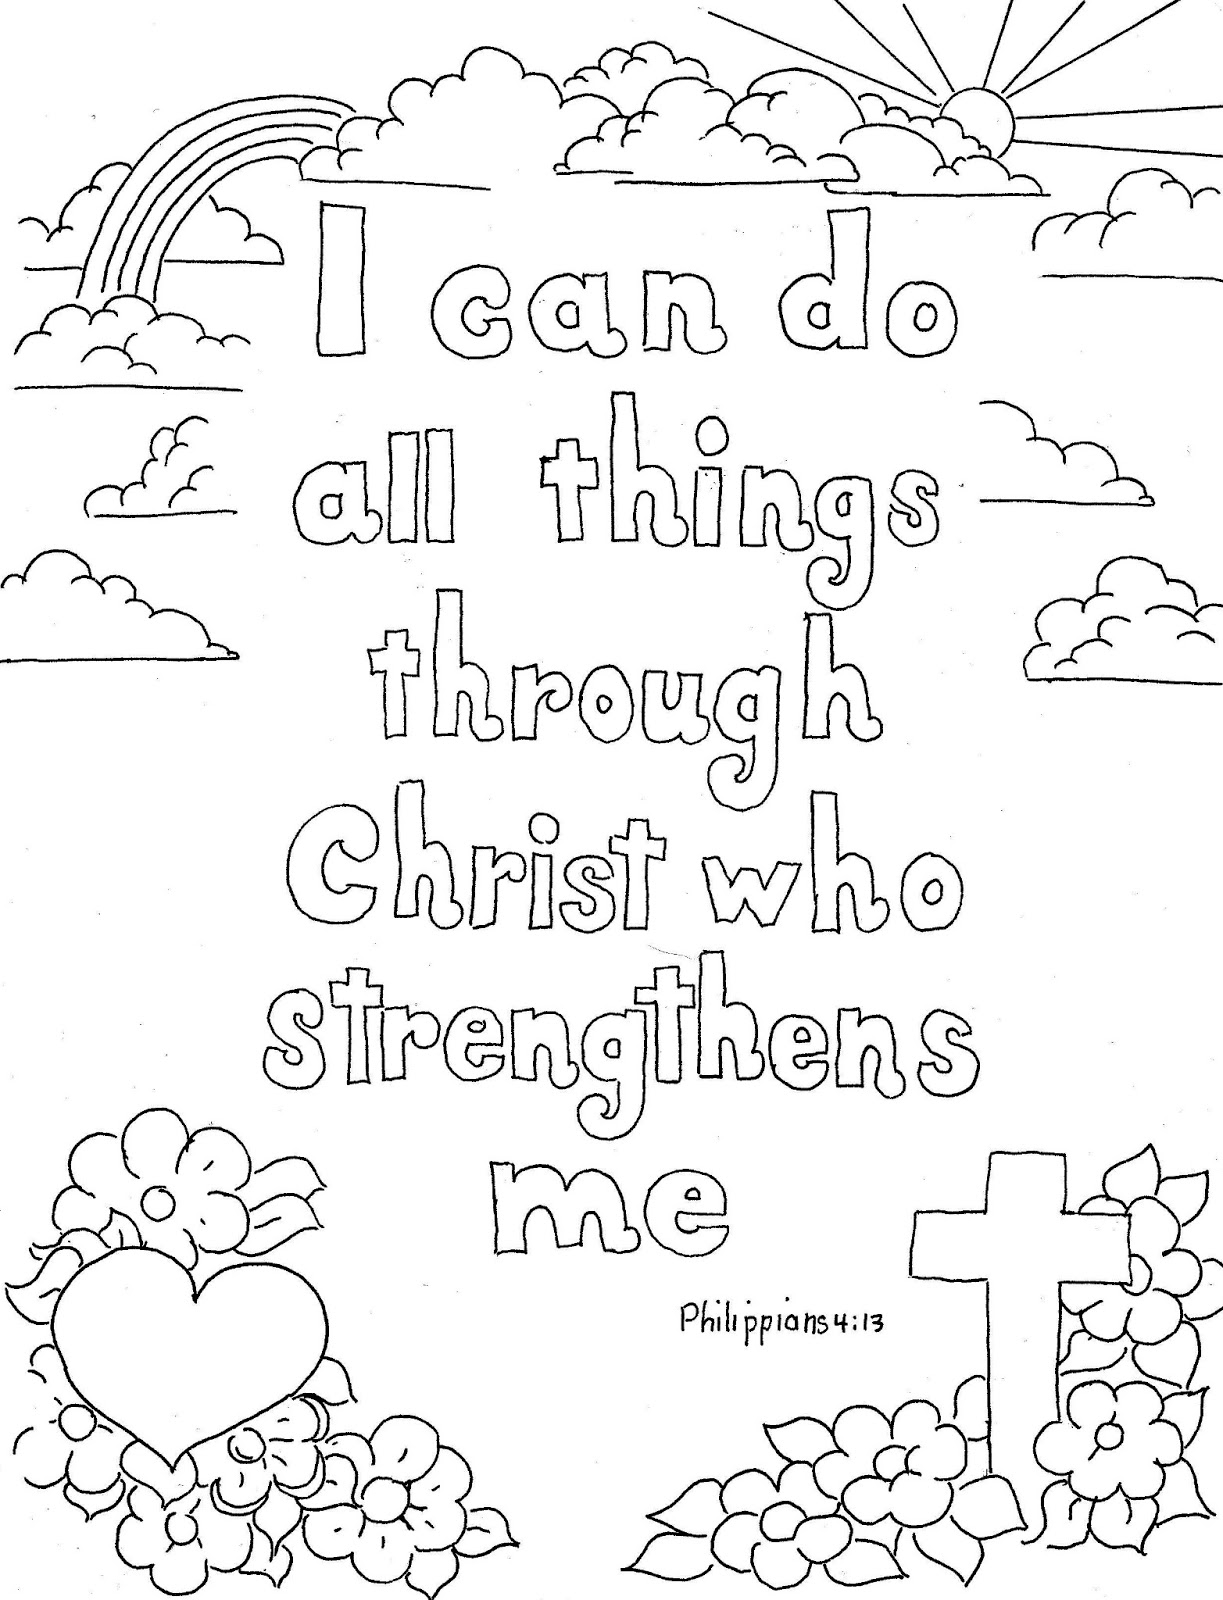 Bible Coloring Page Best Bible Coloring Pages for Sunday School Printable Of Prayer Trust In the Lord Collection